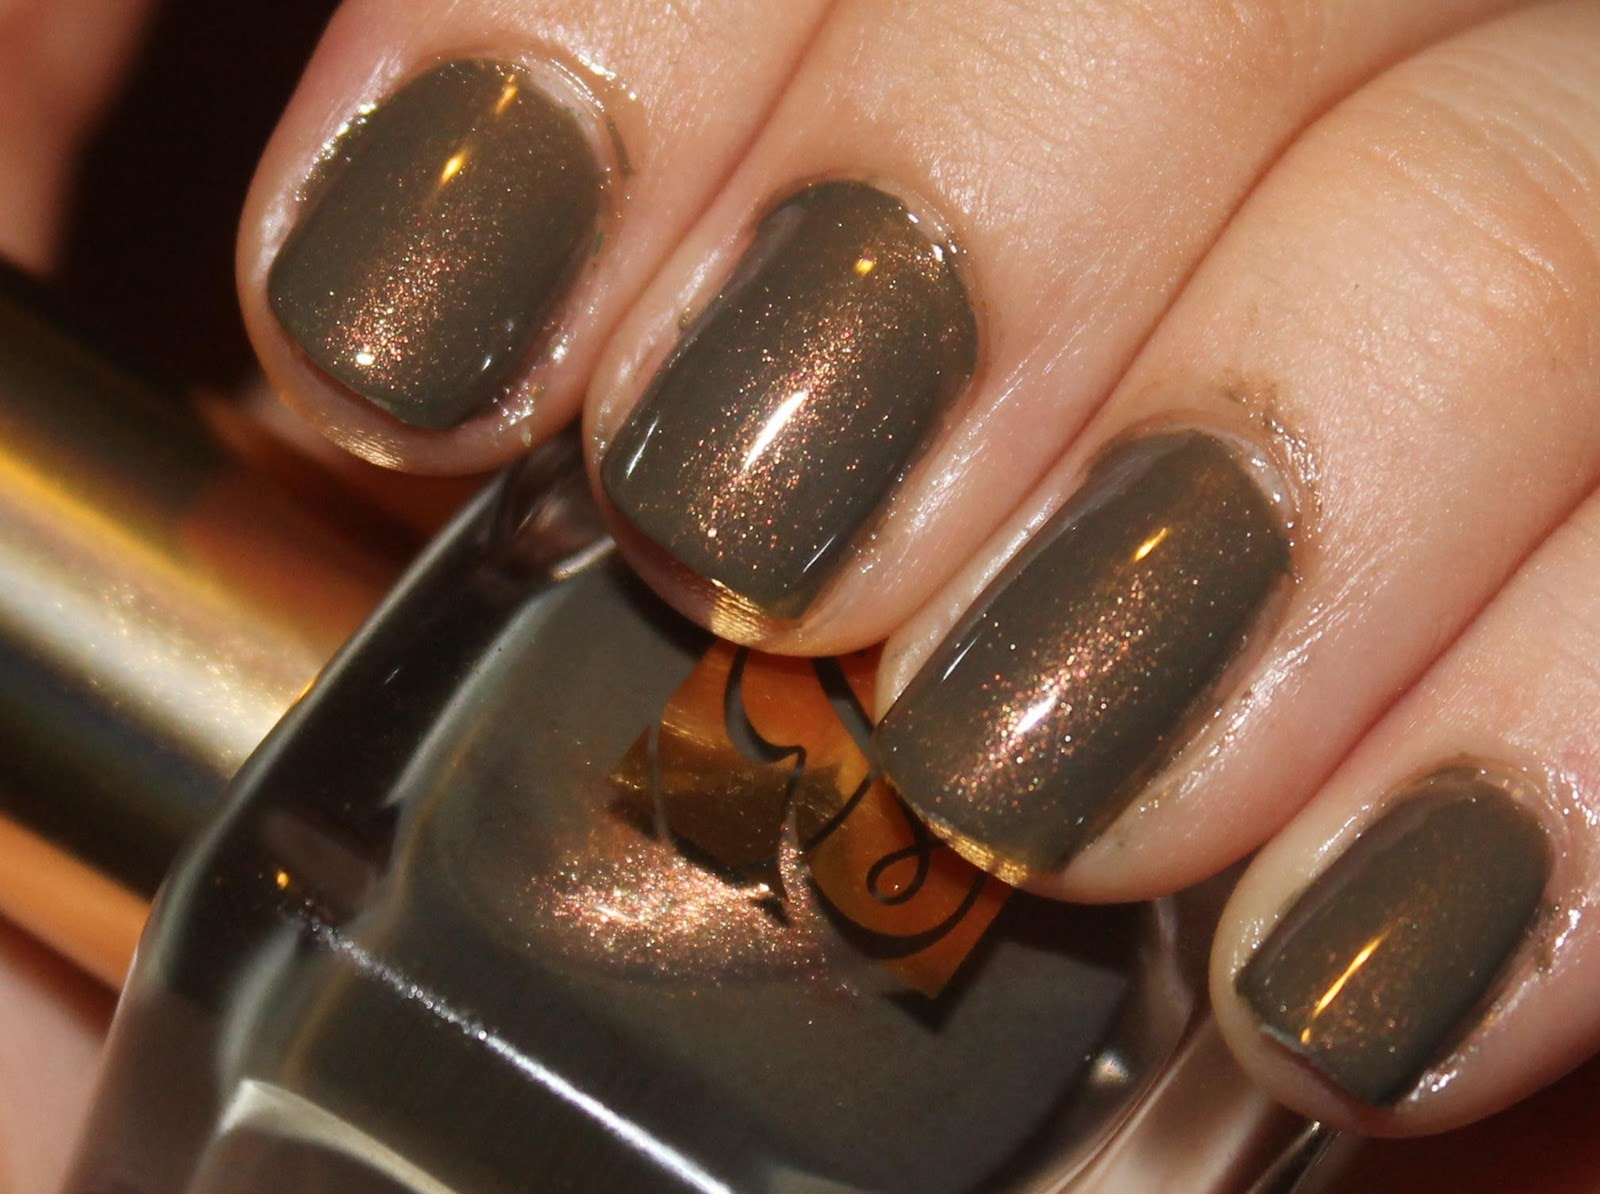 The Dark Side of Beauty: Estee Lauder \'Metallic Sage\' Nail Lacquer